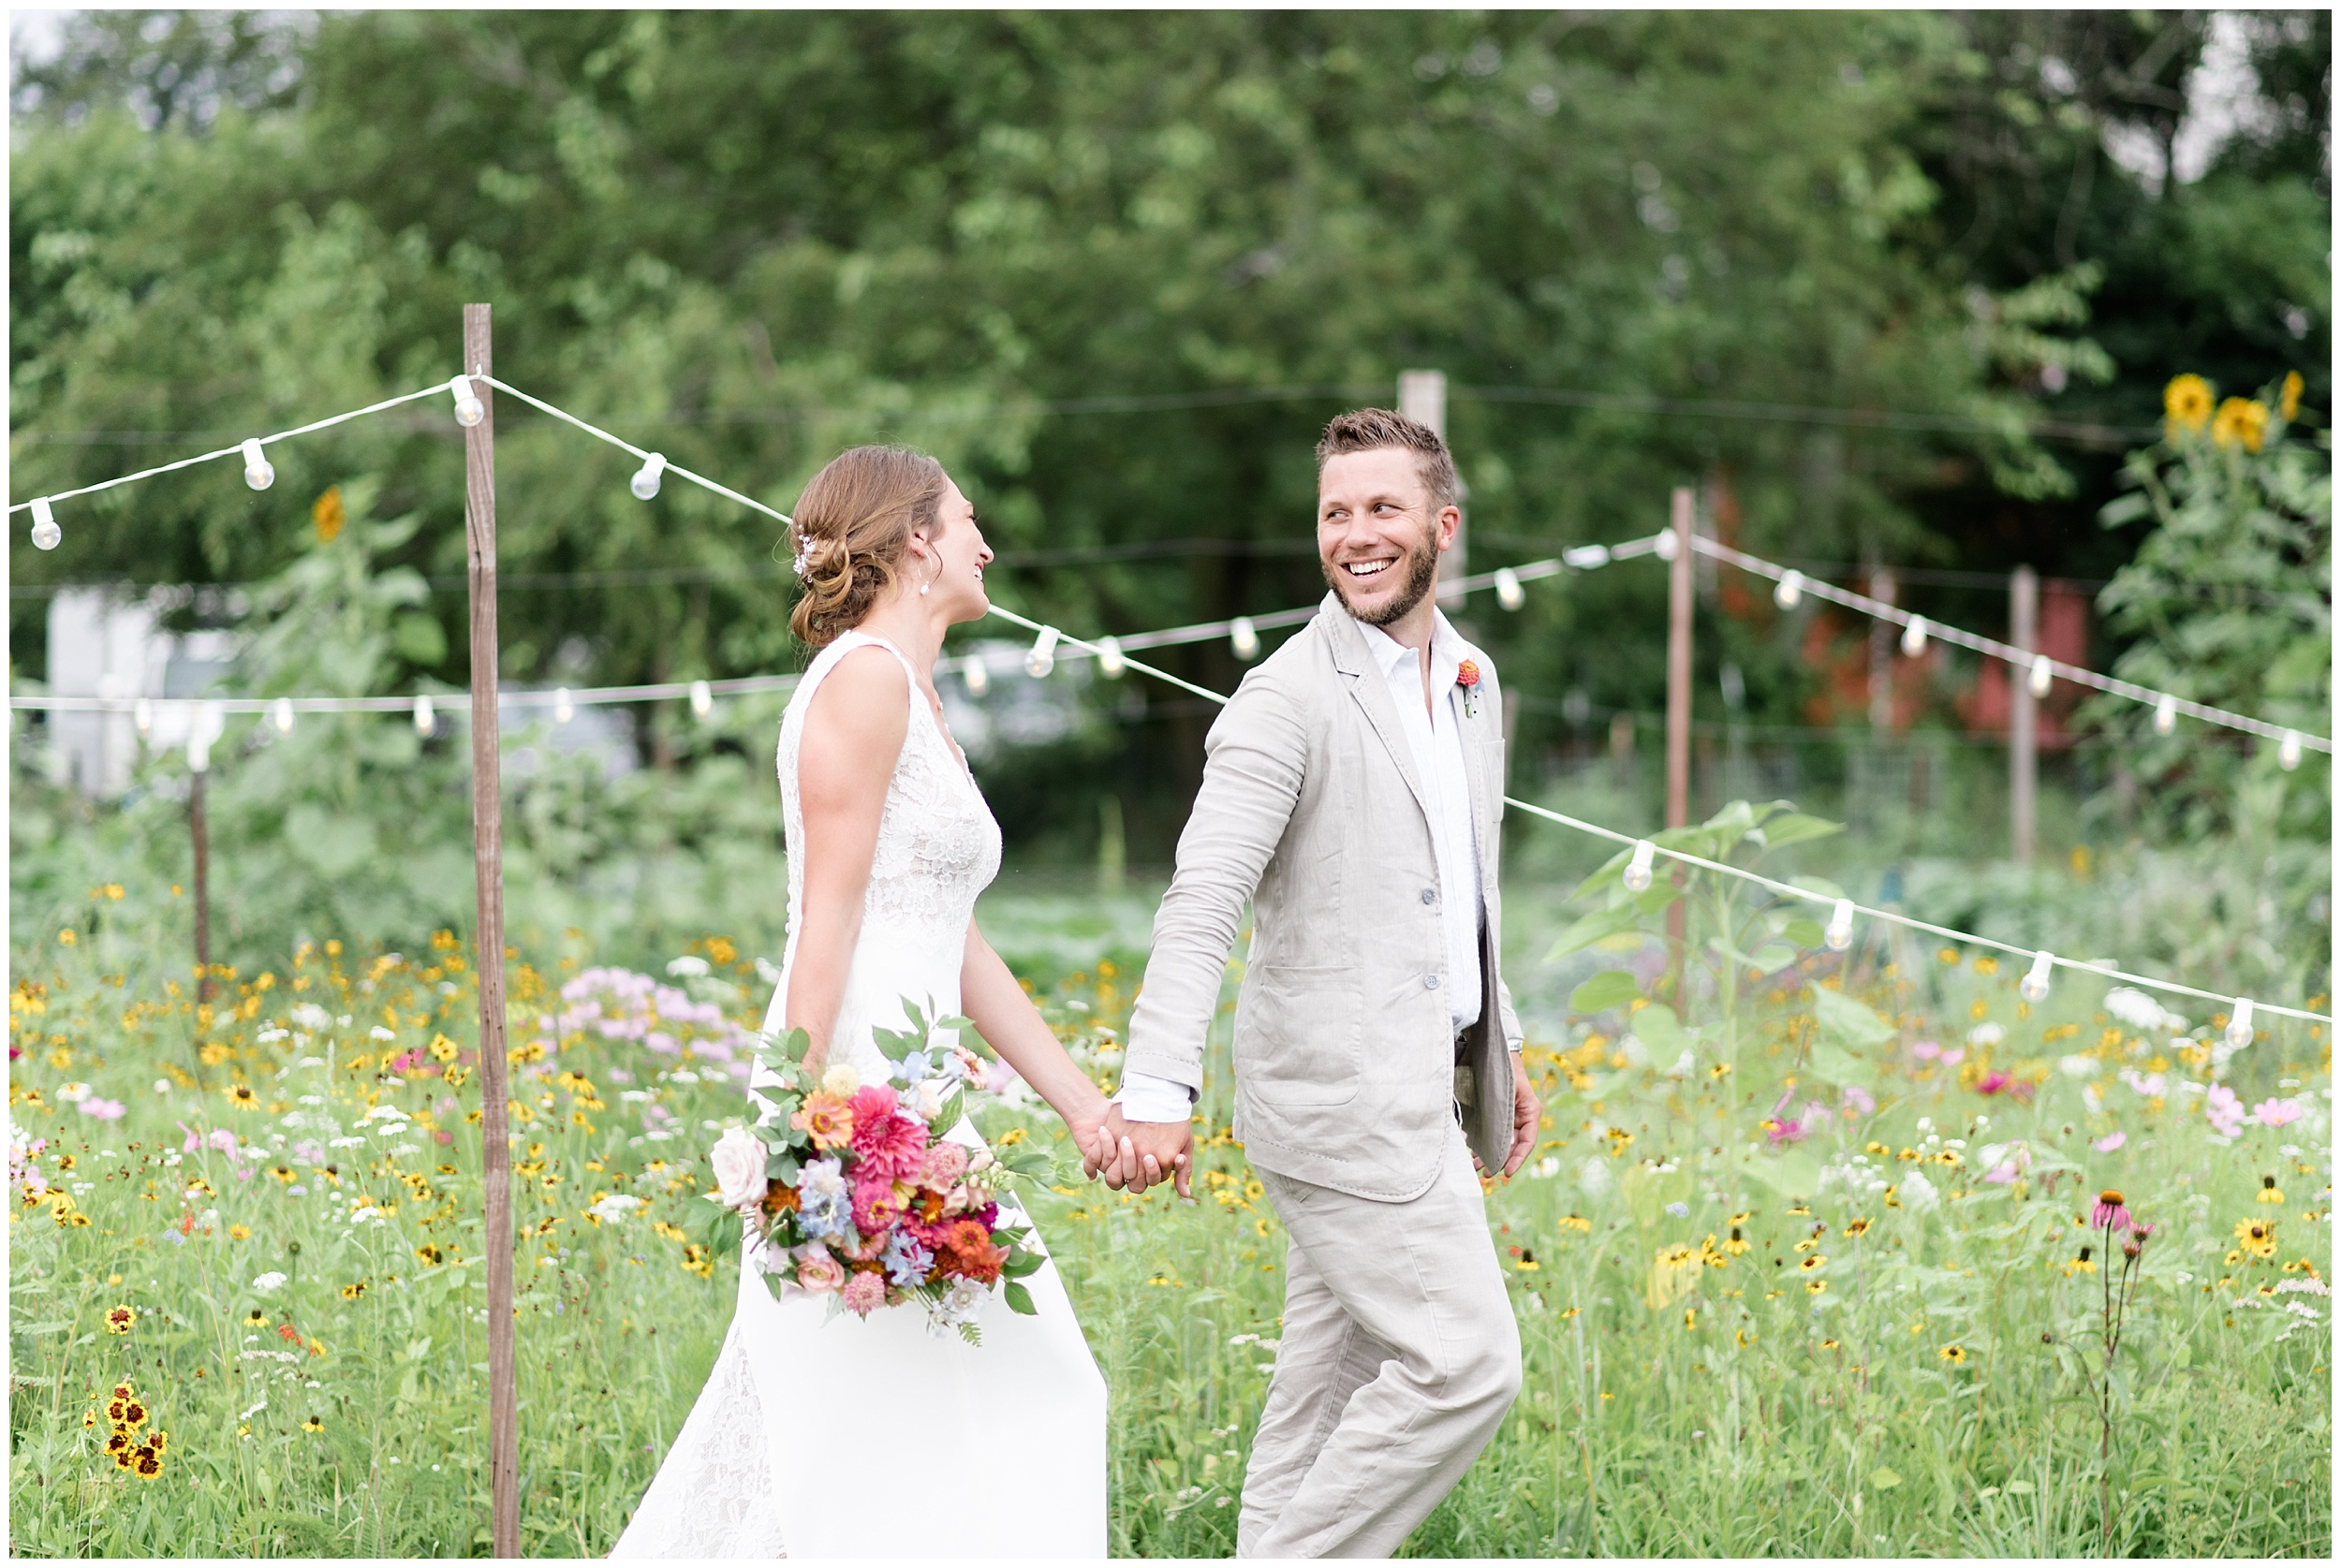 Whimsical-Ethereal-July-Kalamazoo-Wedding-Bright-Airy-Documentary-Milwaukee-Photographer_0080.jpg